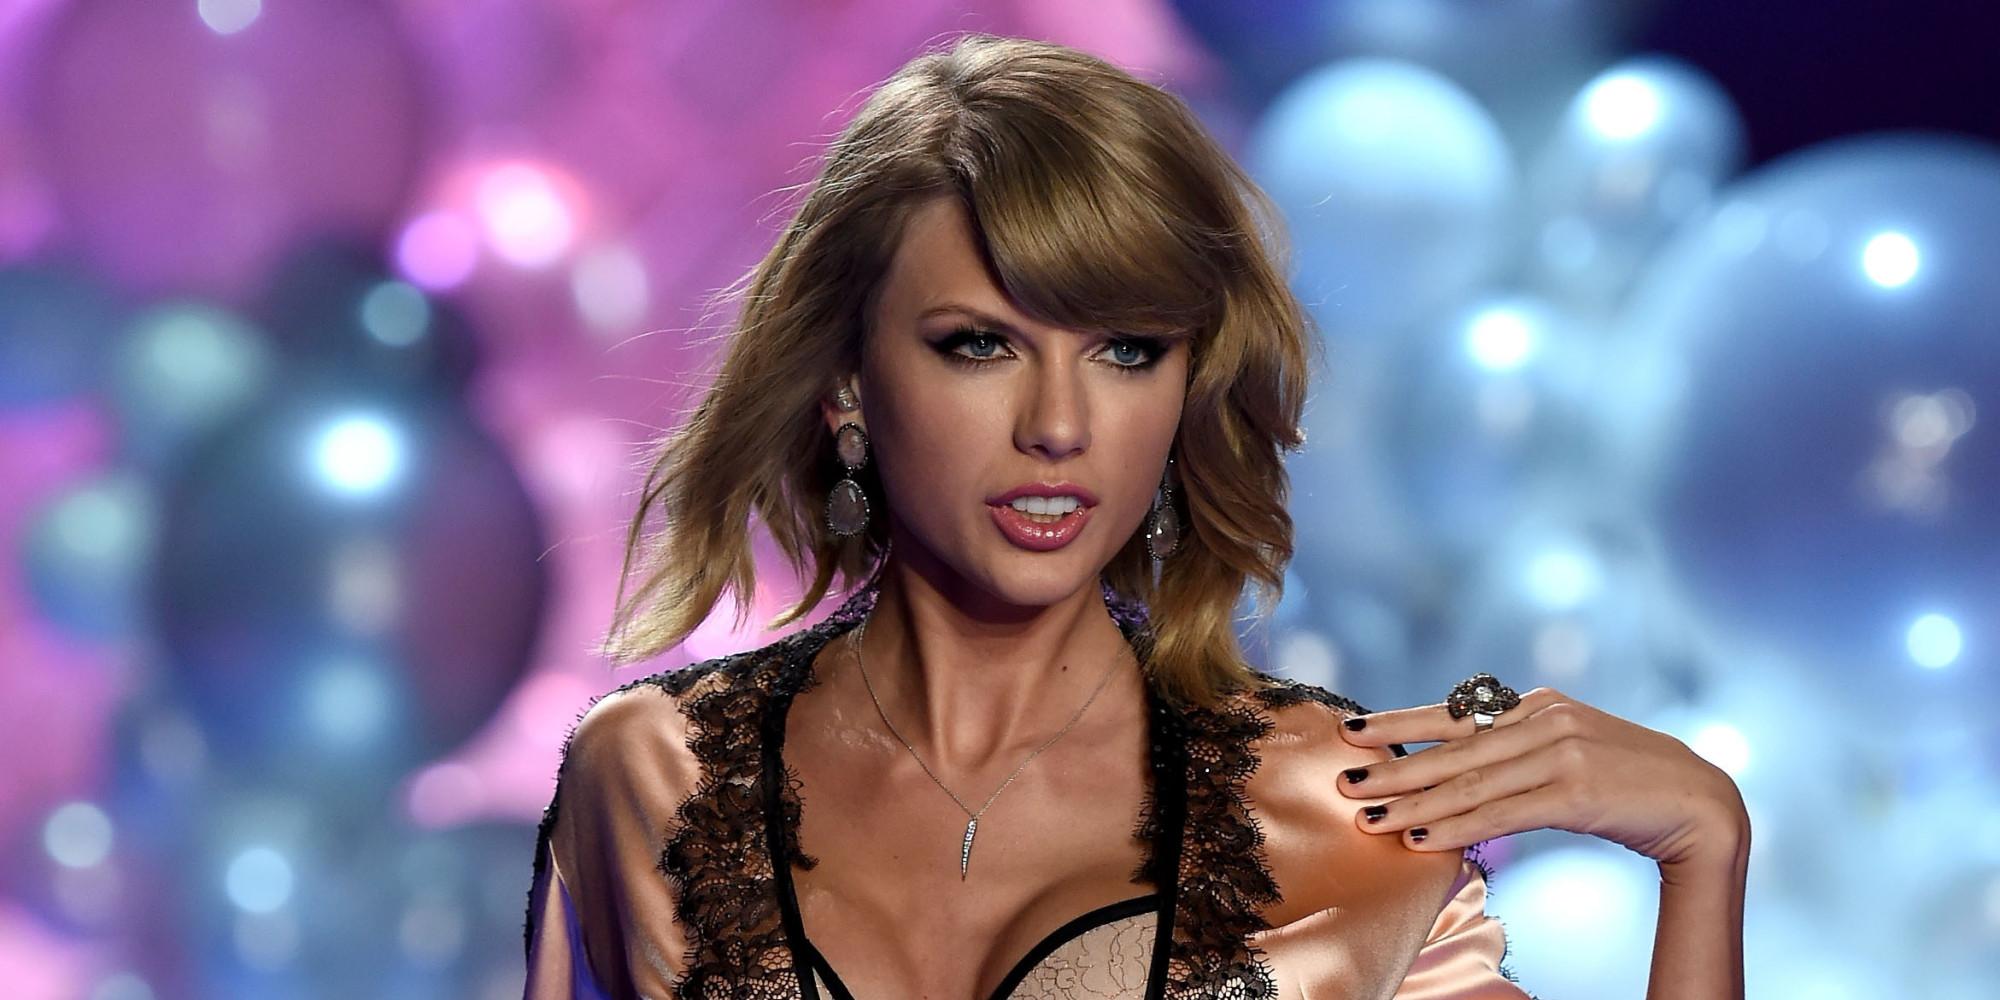 Taylor Swift Slips On Some Silky Lingerie For The Victoria's ...